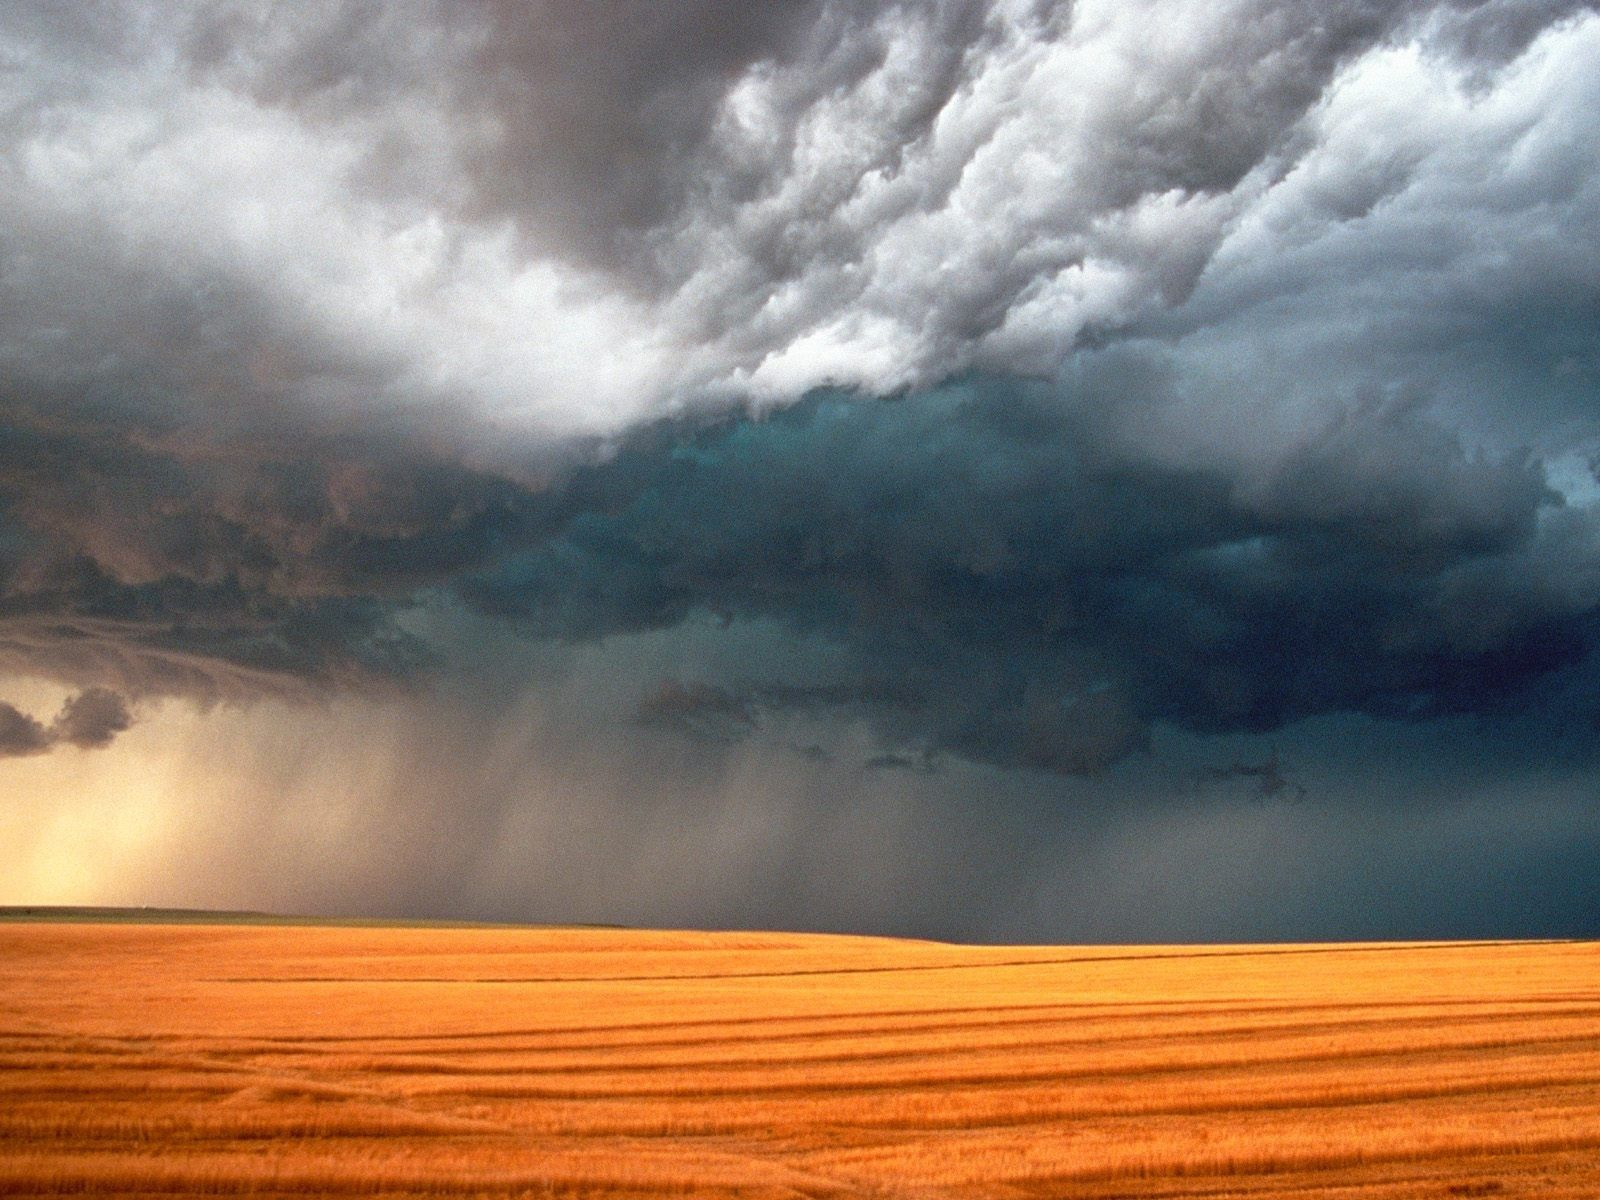 Extreme Cloud Wallpaper: Weather Wallpaper, Storm Wallpaper